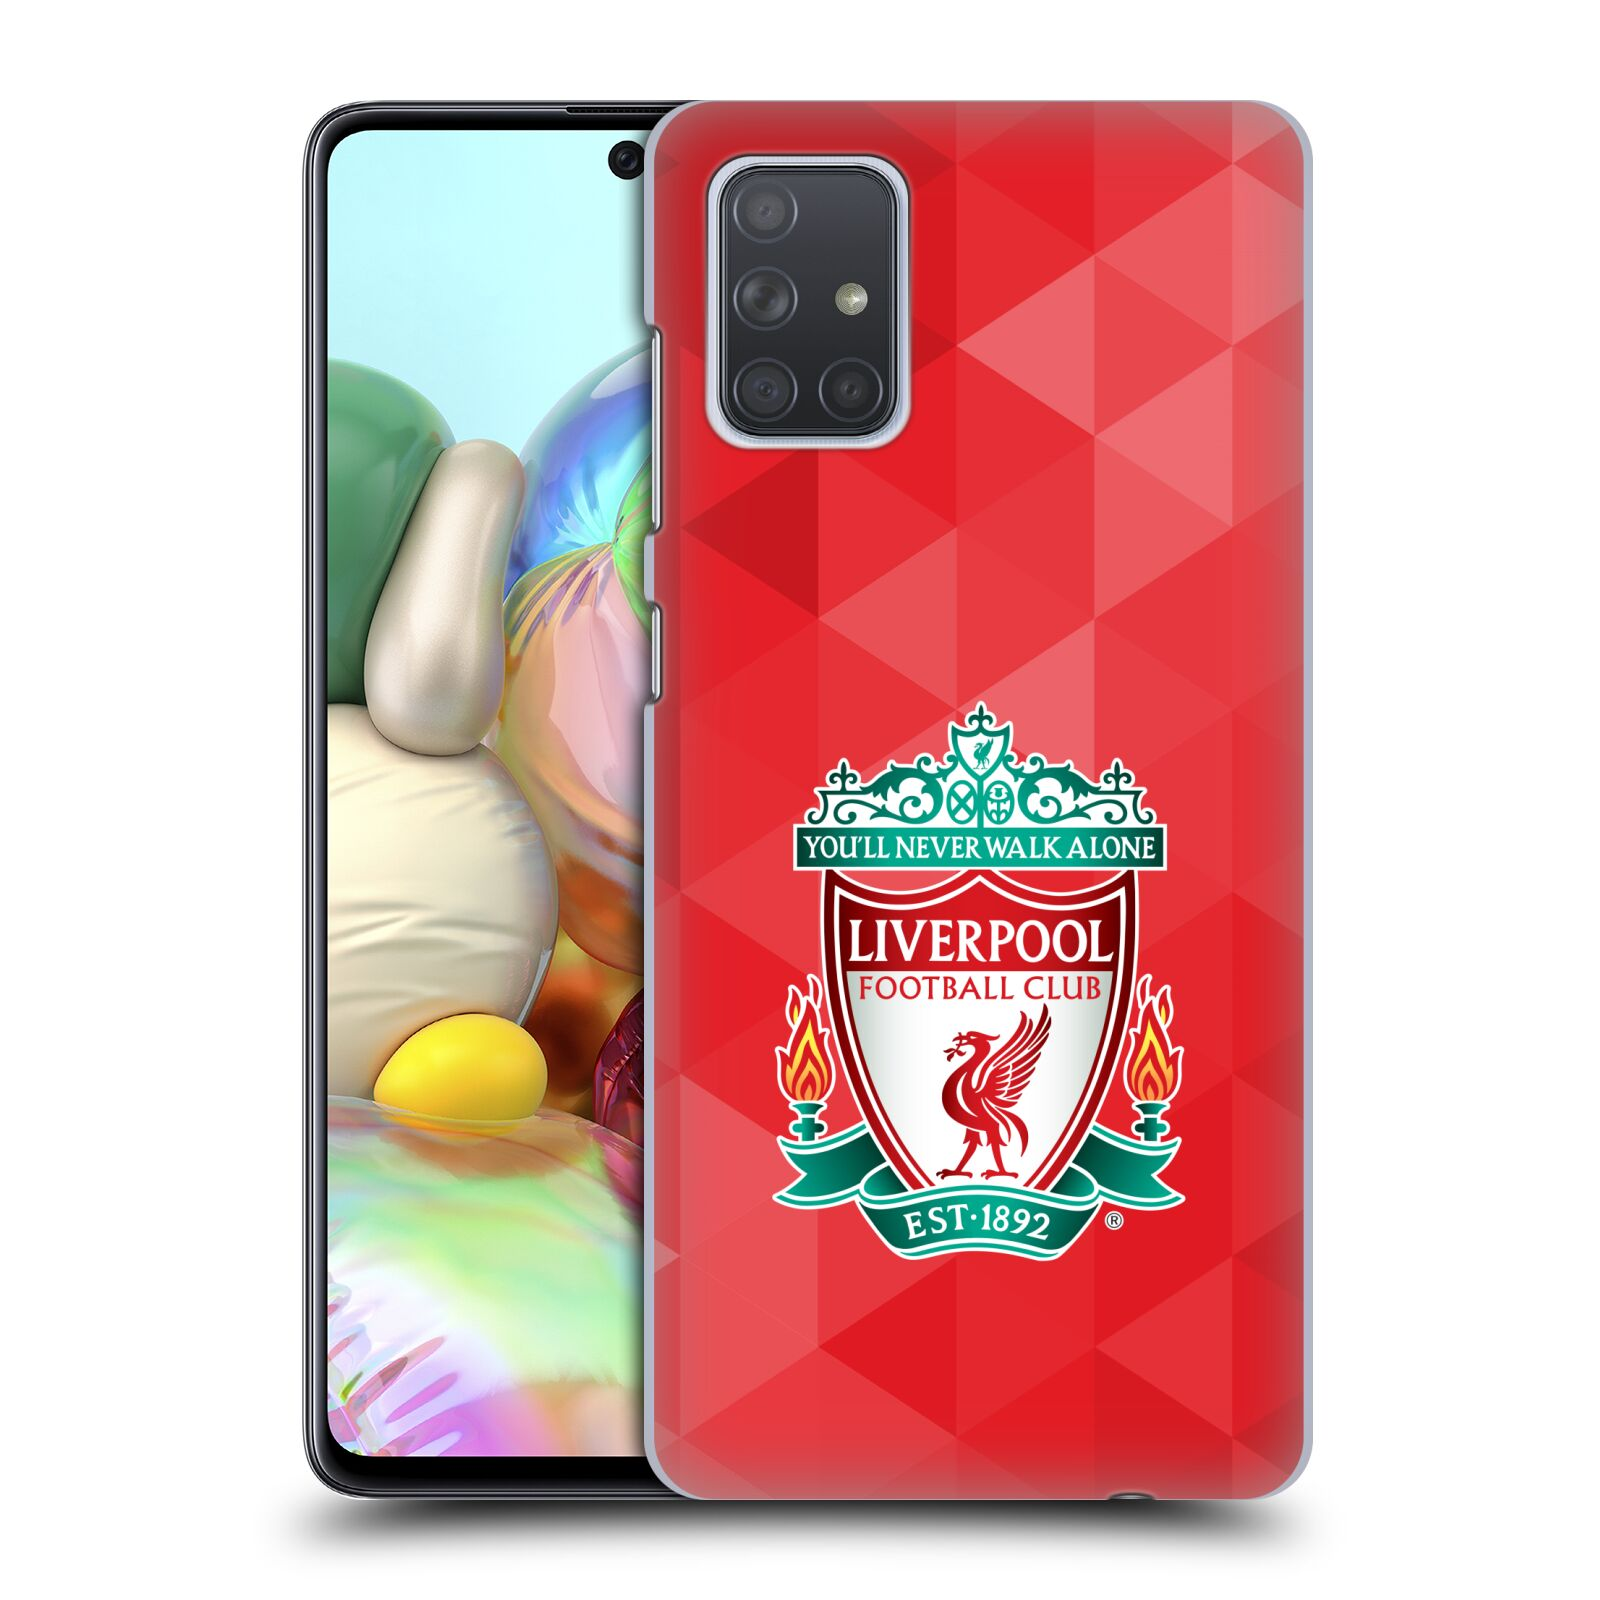 Plastové pouzdro na mobil Samsung Galaxy A71 - Head Case - ZNAK LIVERPOOL FC OFFICIAL GEOMETRIC RED